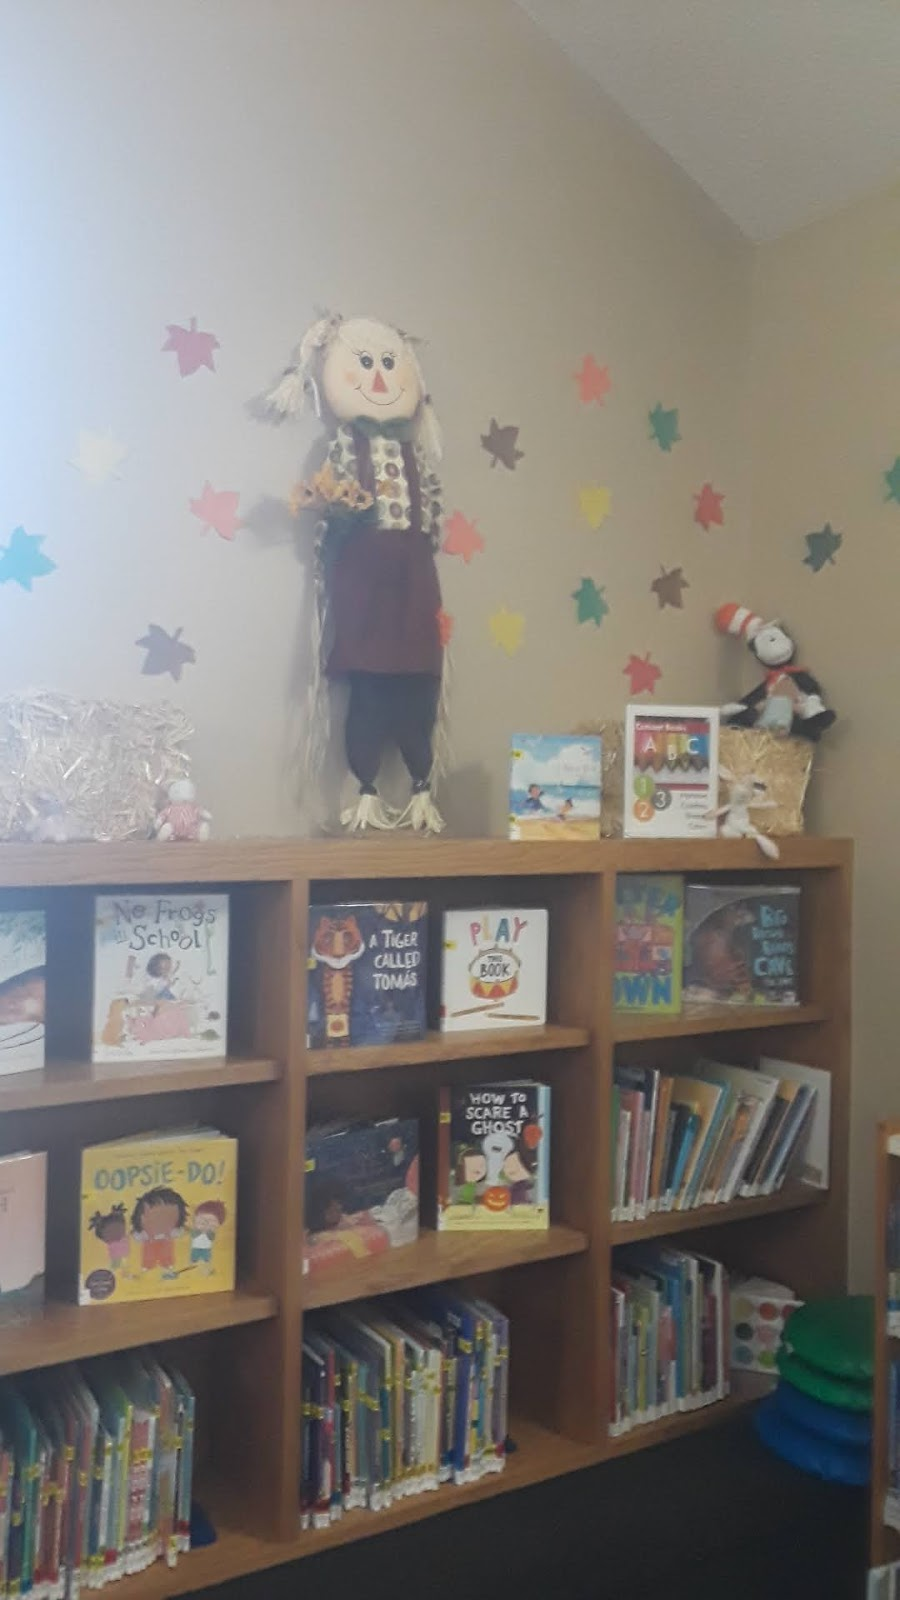 Delaware County District Library - library  | Photo 10 of 10 | Address: 75 N 4th St, Ostrander, OH 43061, USA | Phone: (740) 666-1410